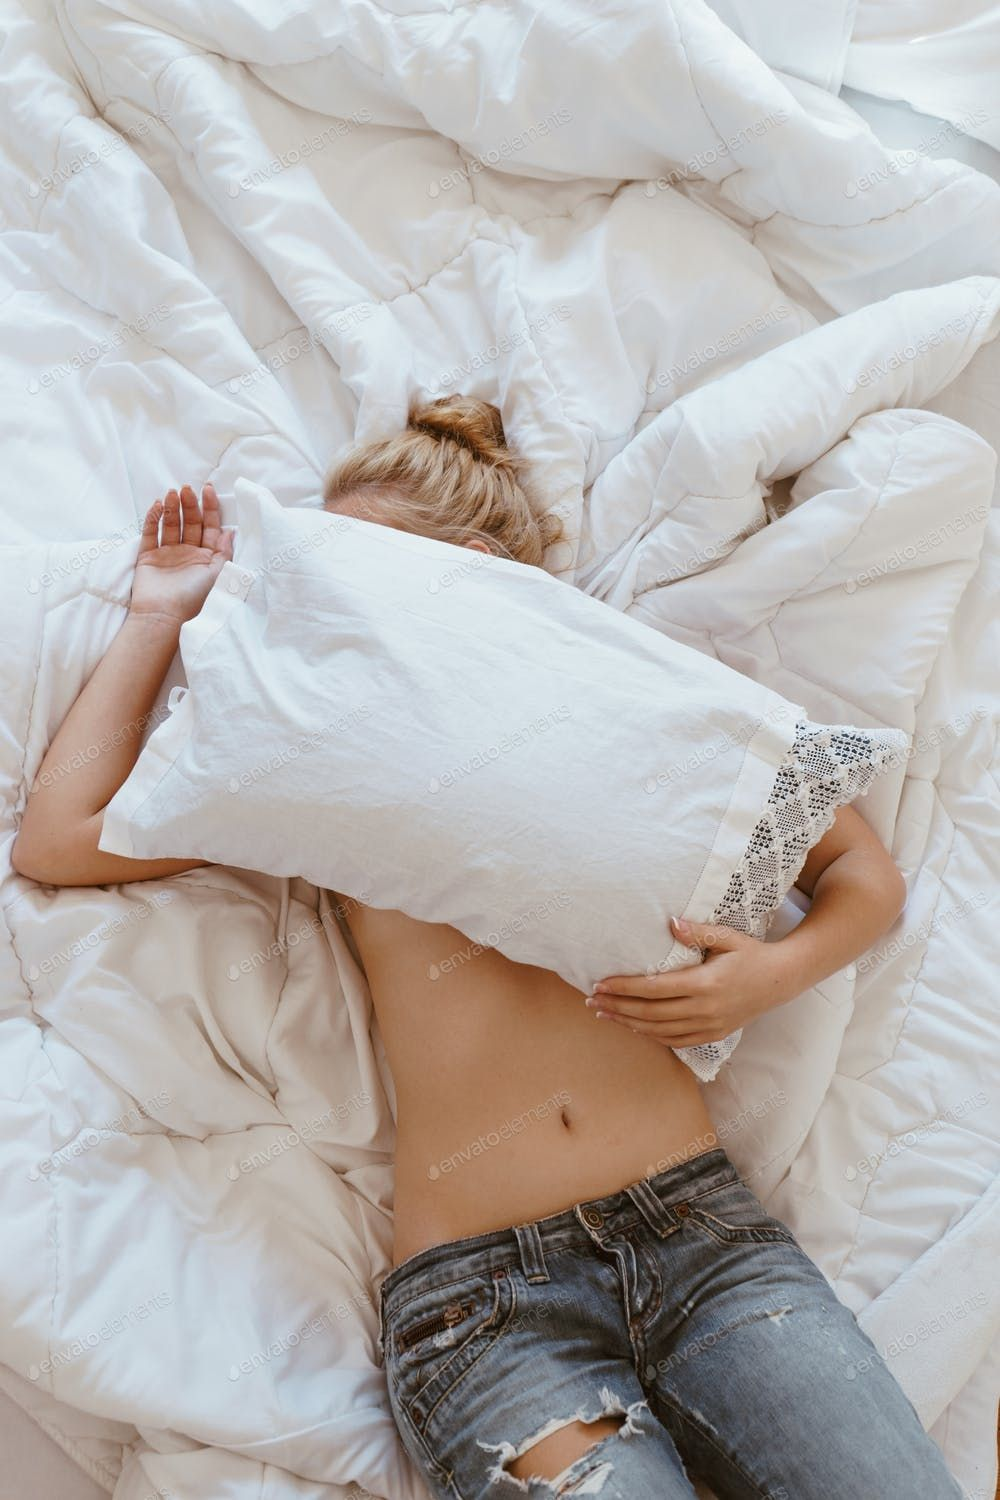 Shirtless woman hiding face with pillow while lying in bed.